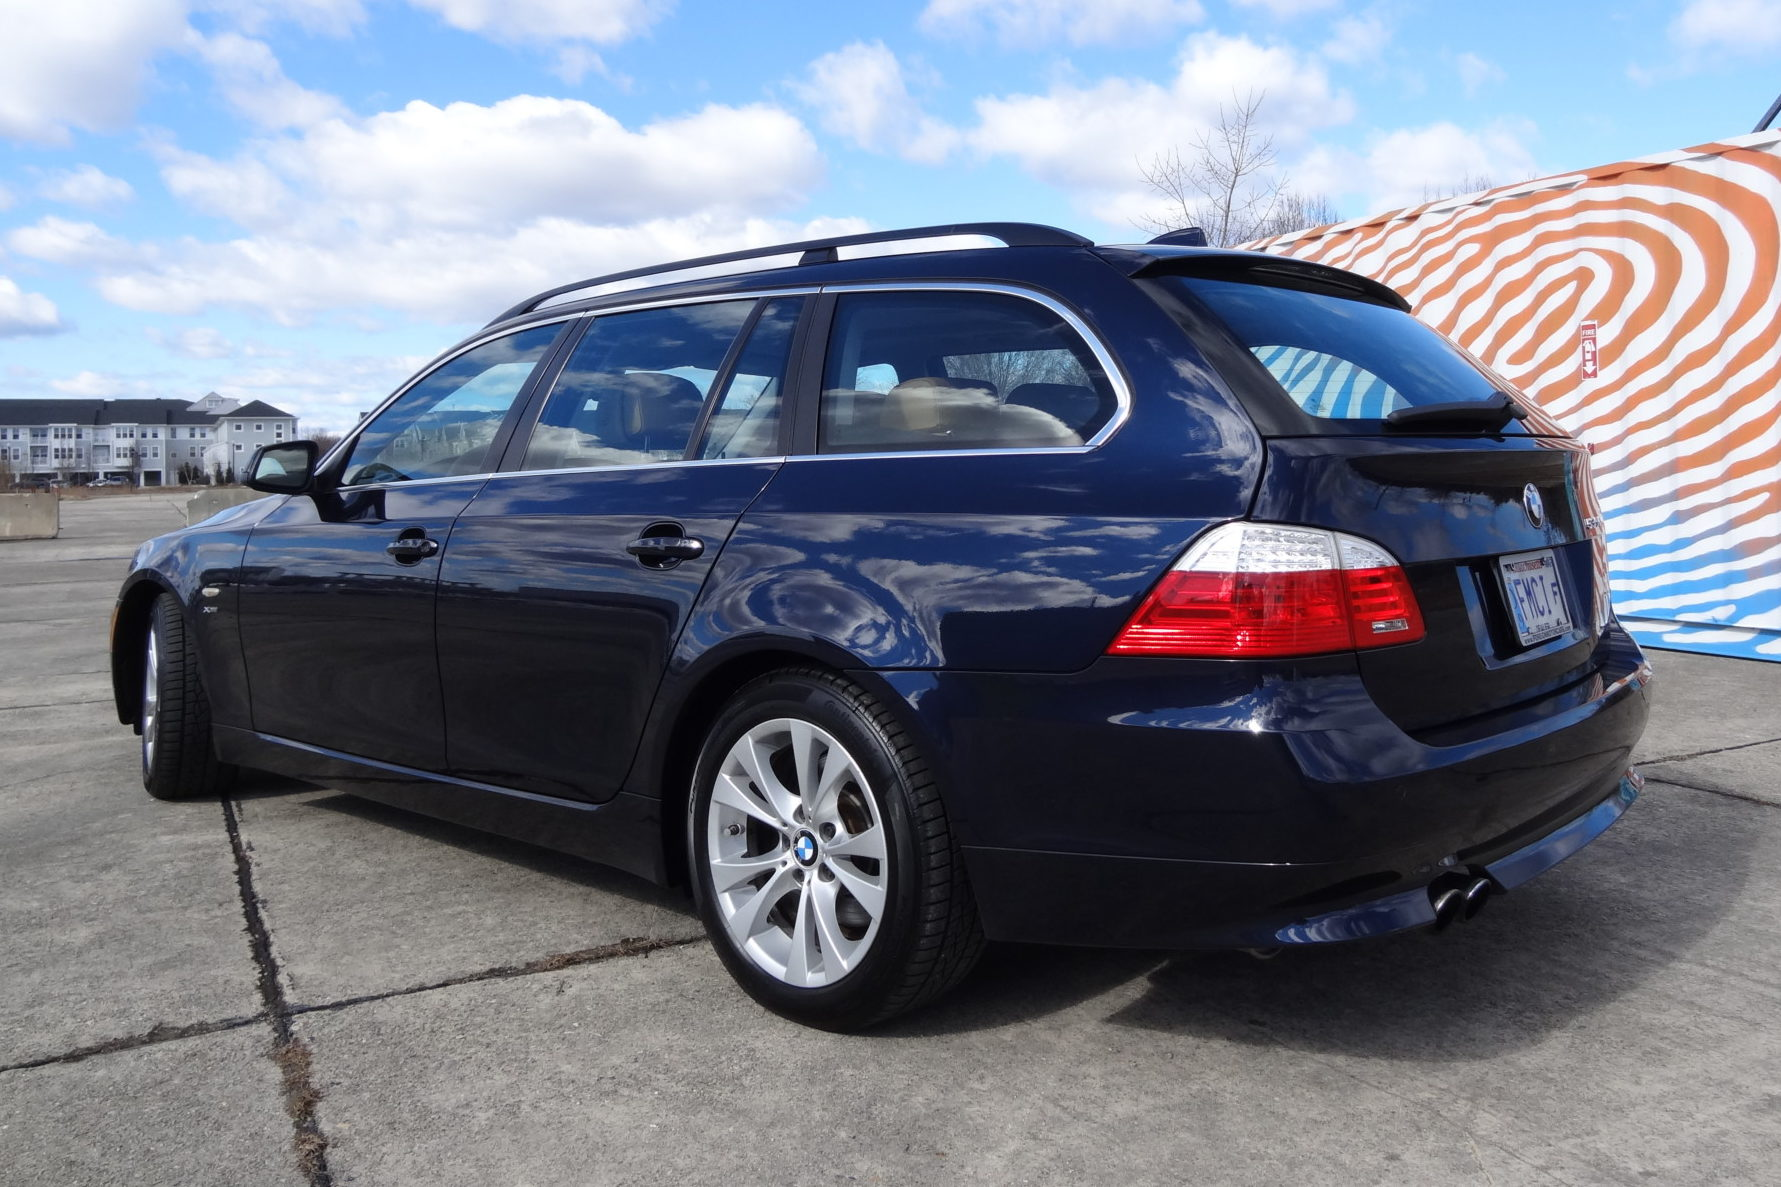 hight resolution of 2010 bmw 535i xdrive touring 6 speed for sale on bat auctions sold for 23 250 on april 1 2019 lot 17 536 bring a trailer